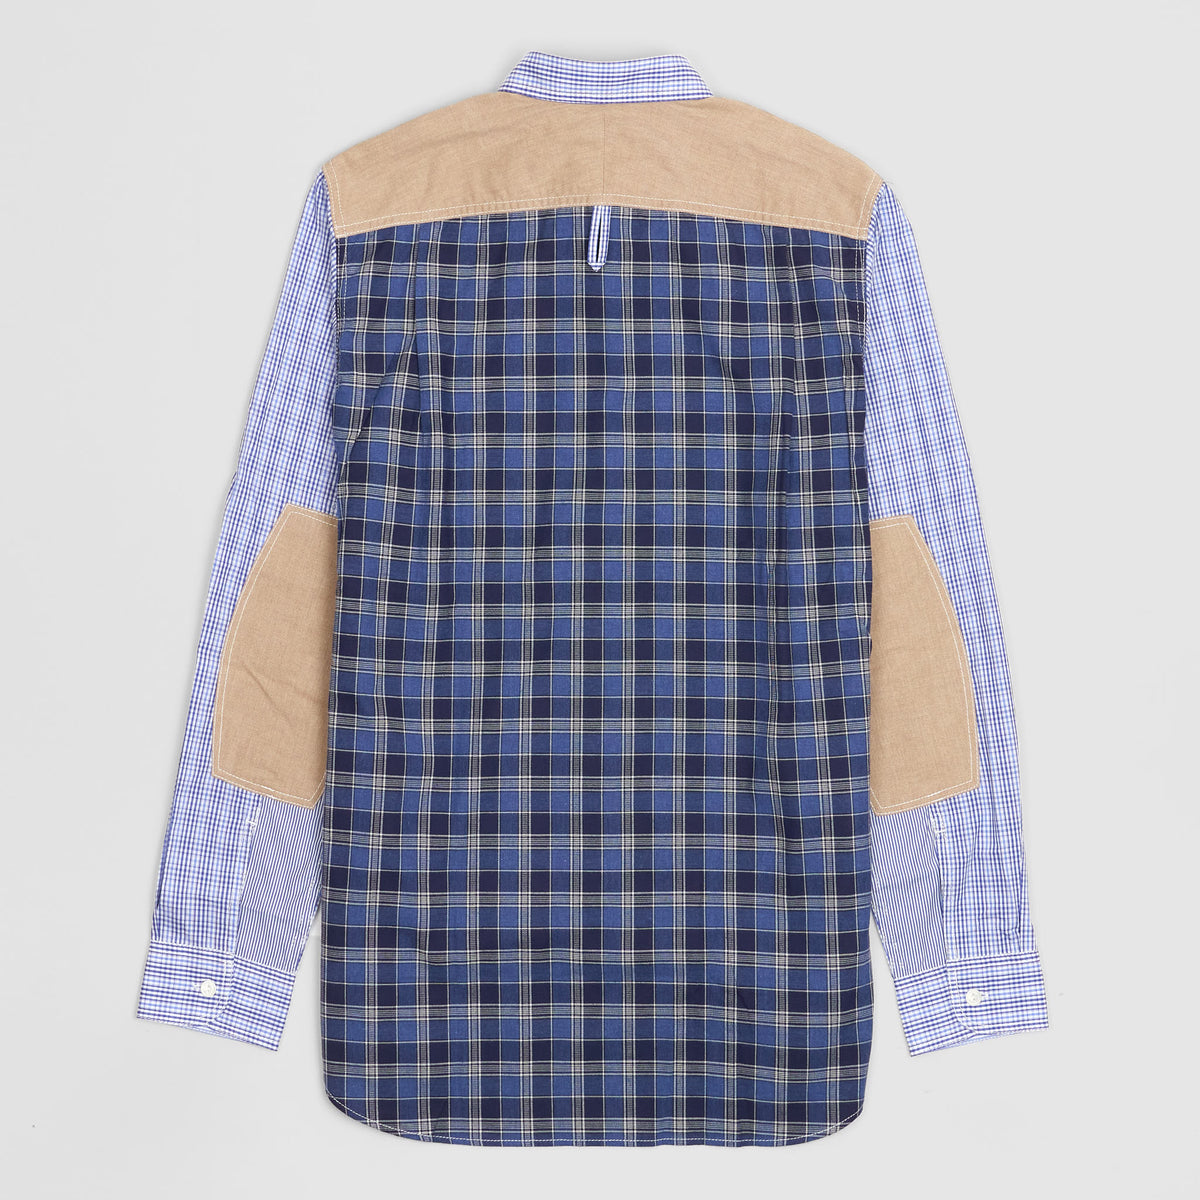 Junya Watanabe Man Plaid Patchwork Button Down Shirt